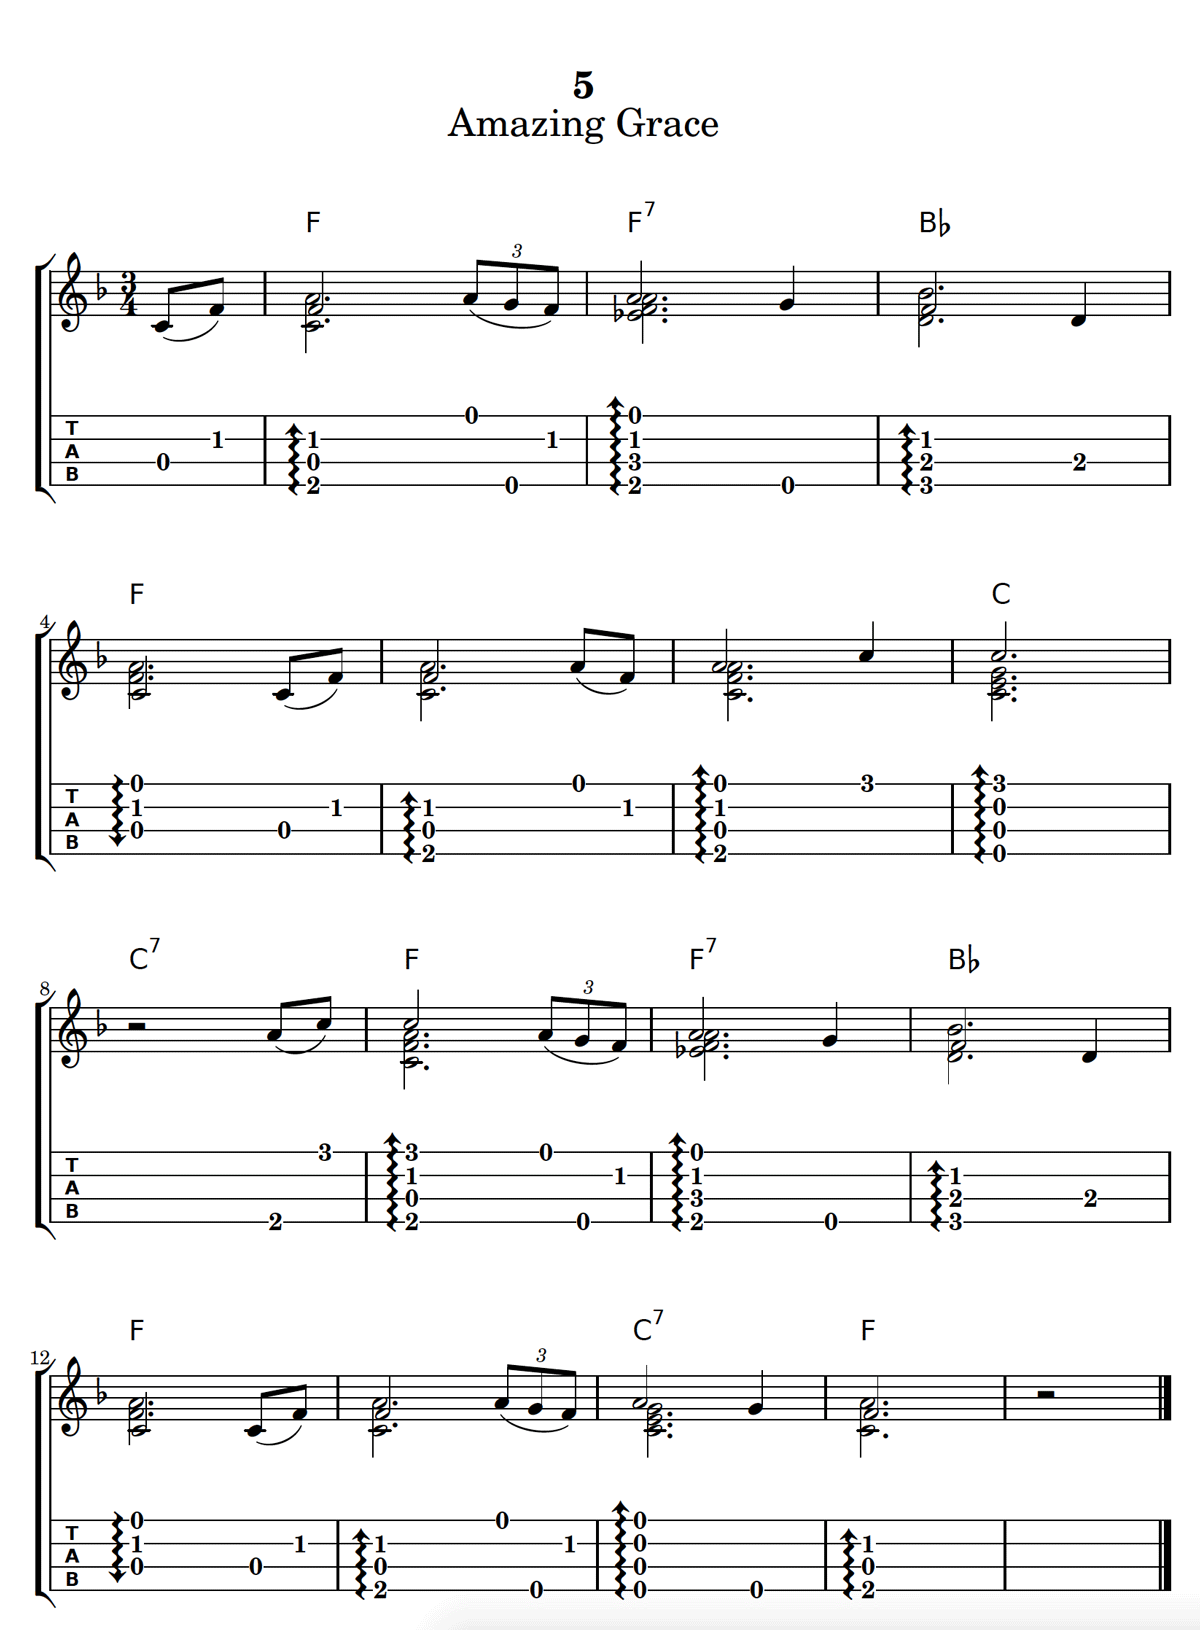 This Is A Great Solo Chord Melody Arrangement Of Amazing Grace For